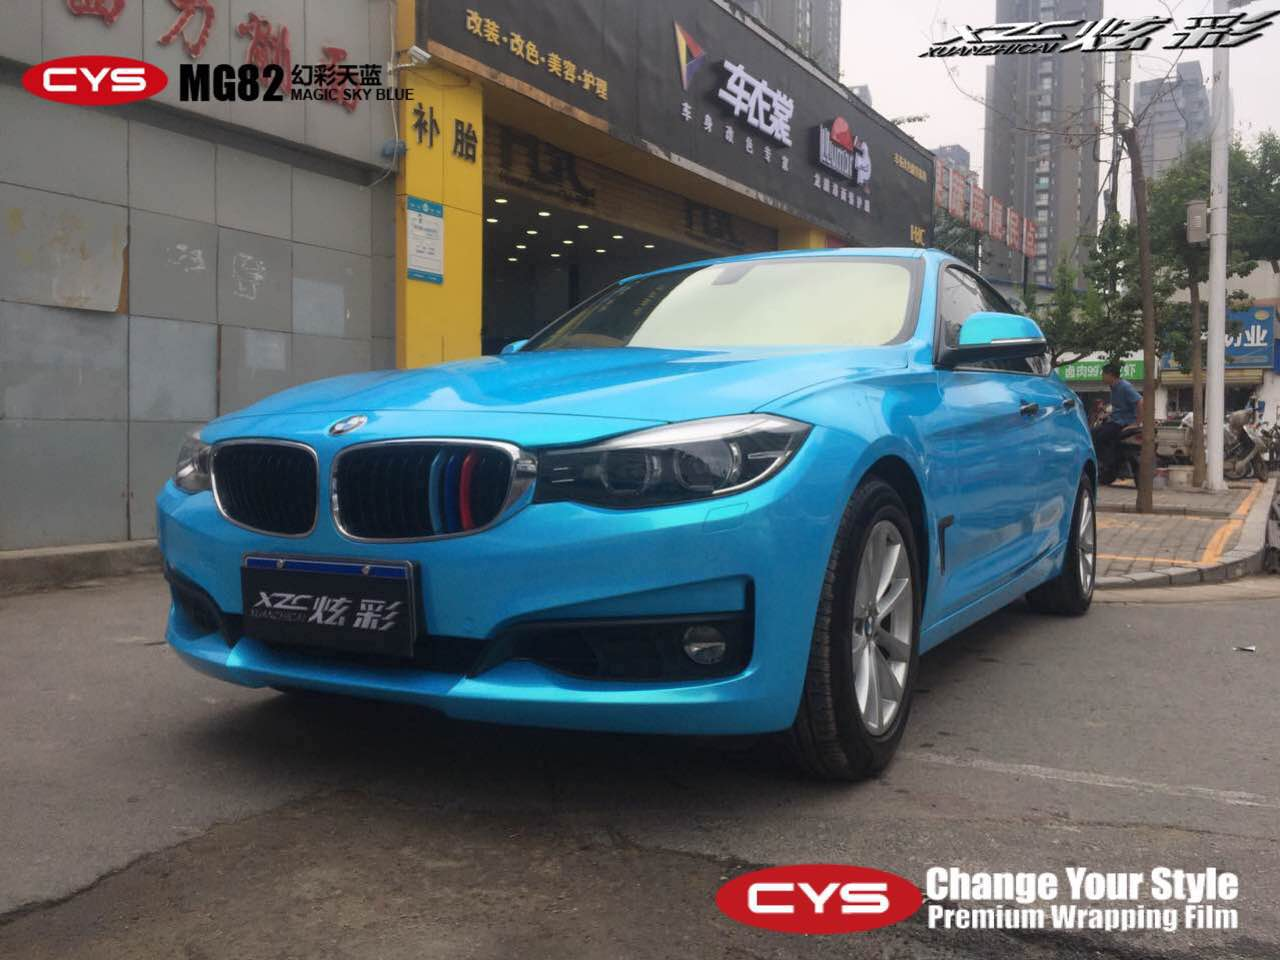 bmw 3 mg82 magic sky blue gallery cys vehicle film official website